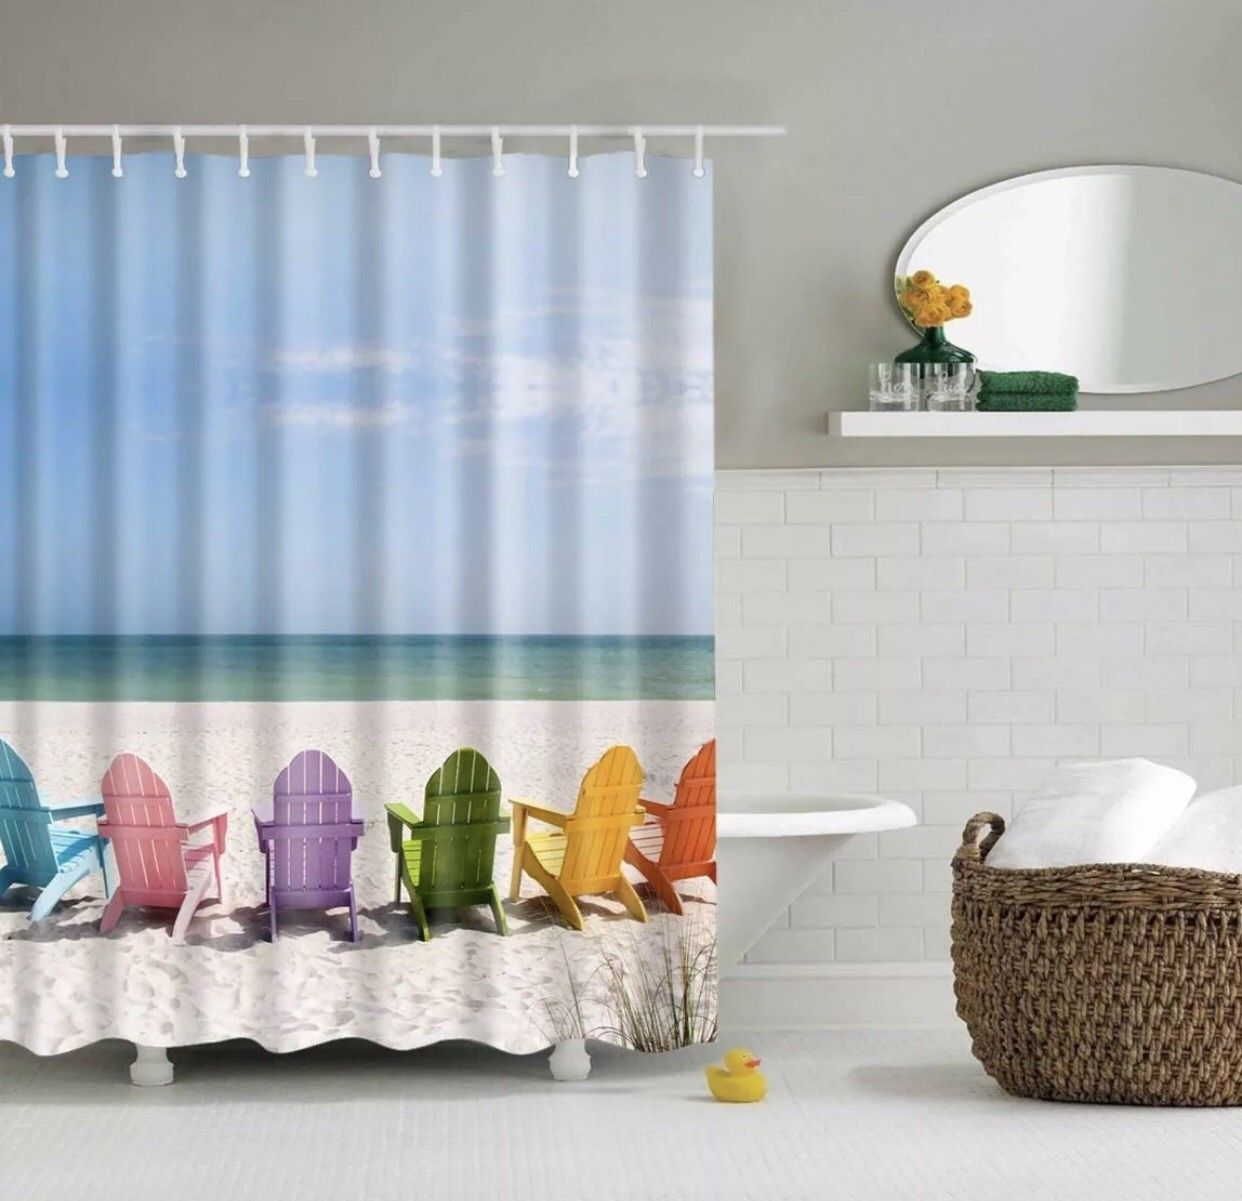 beach shower curtains polyester bathroom with 12 hooks waterproof for decor landscape bath chair